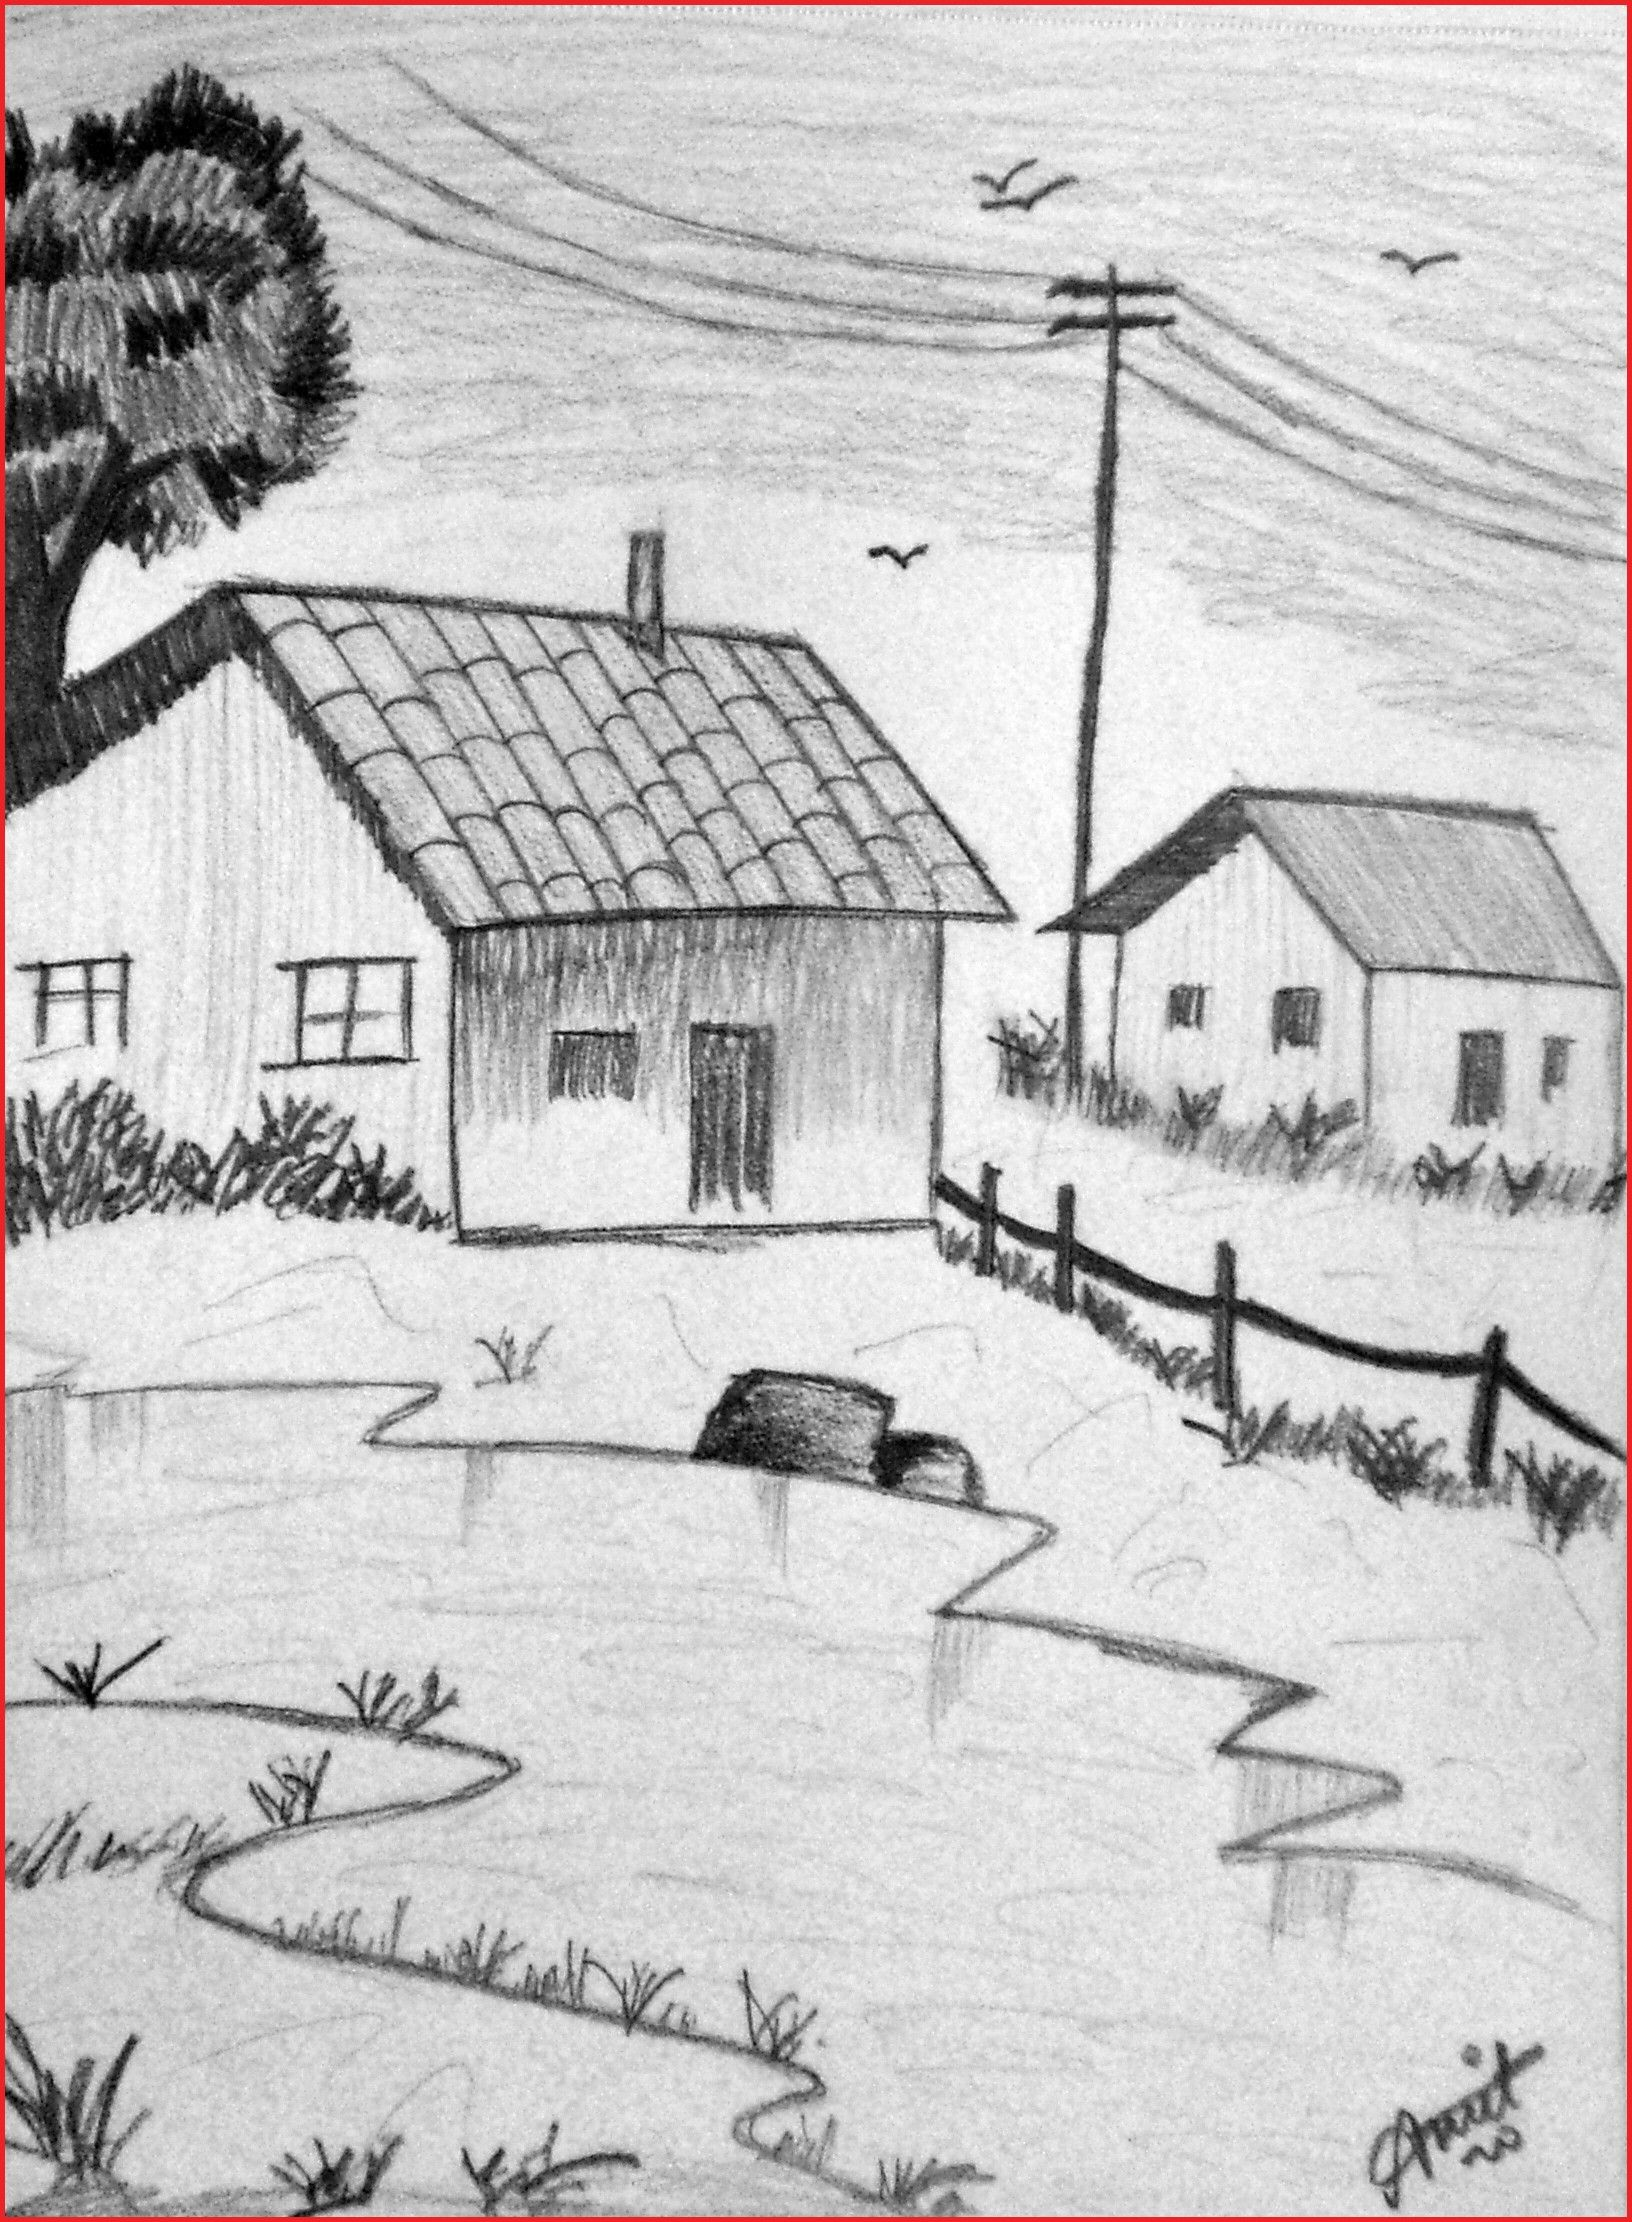 How To Draw Landscapes 152578 Shading Landscape Pencil Landscape Landscape Pencil Drawings Landscape Drawing Easy Pencil Drawings Of Nature